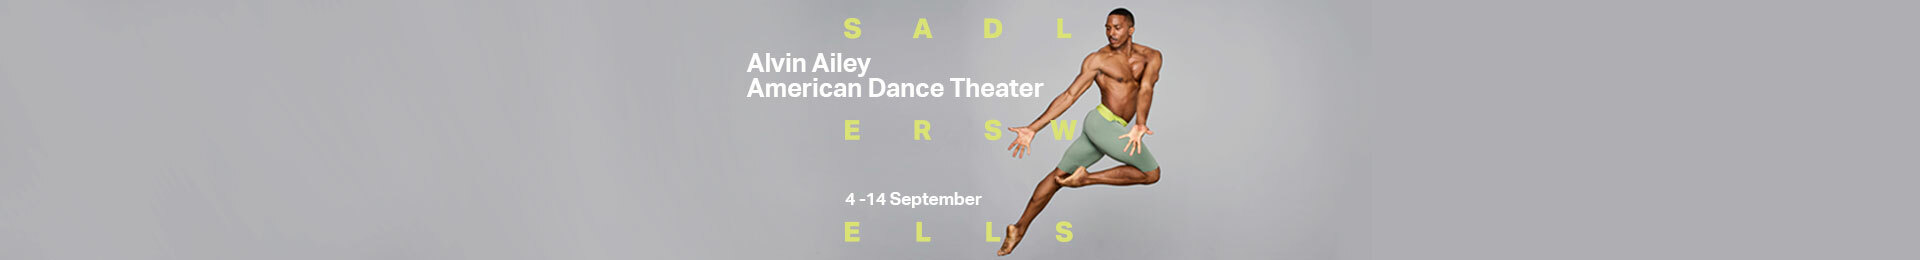 Alvin Ailey American Dance Theater: Programme B banner image